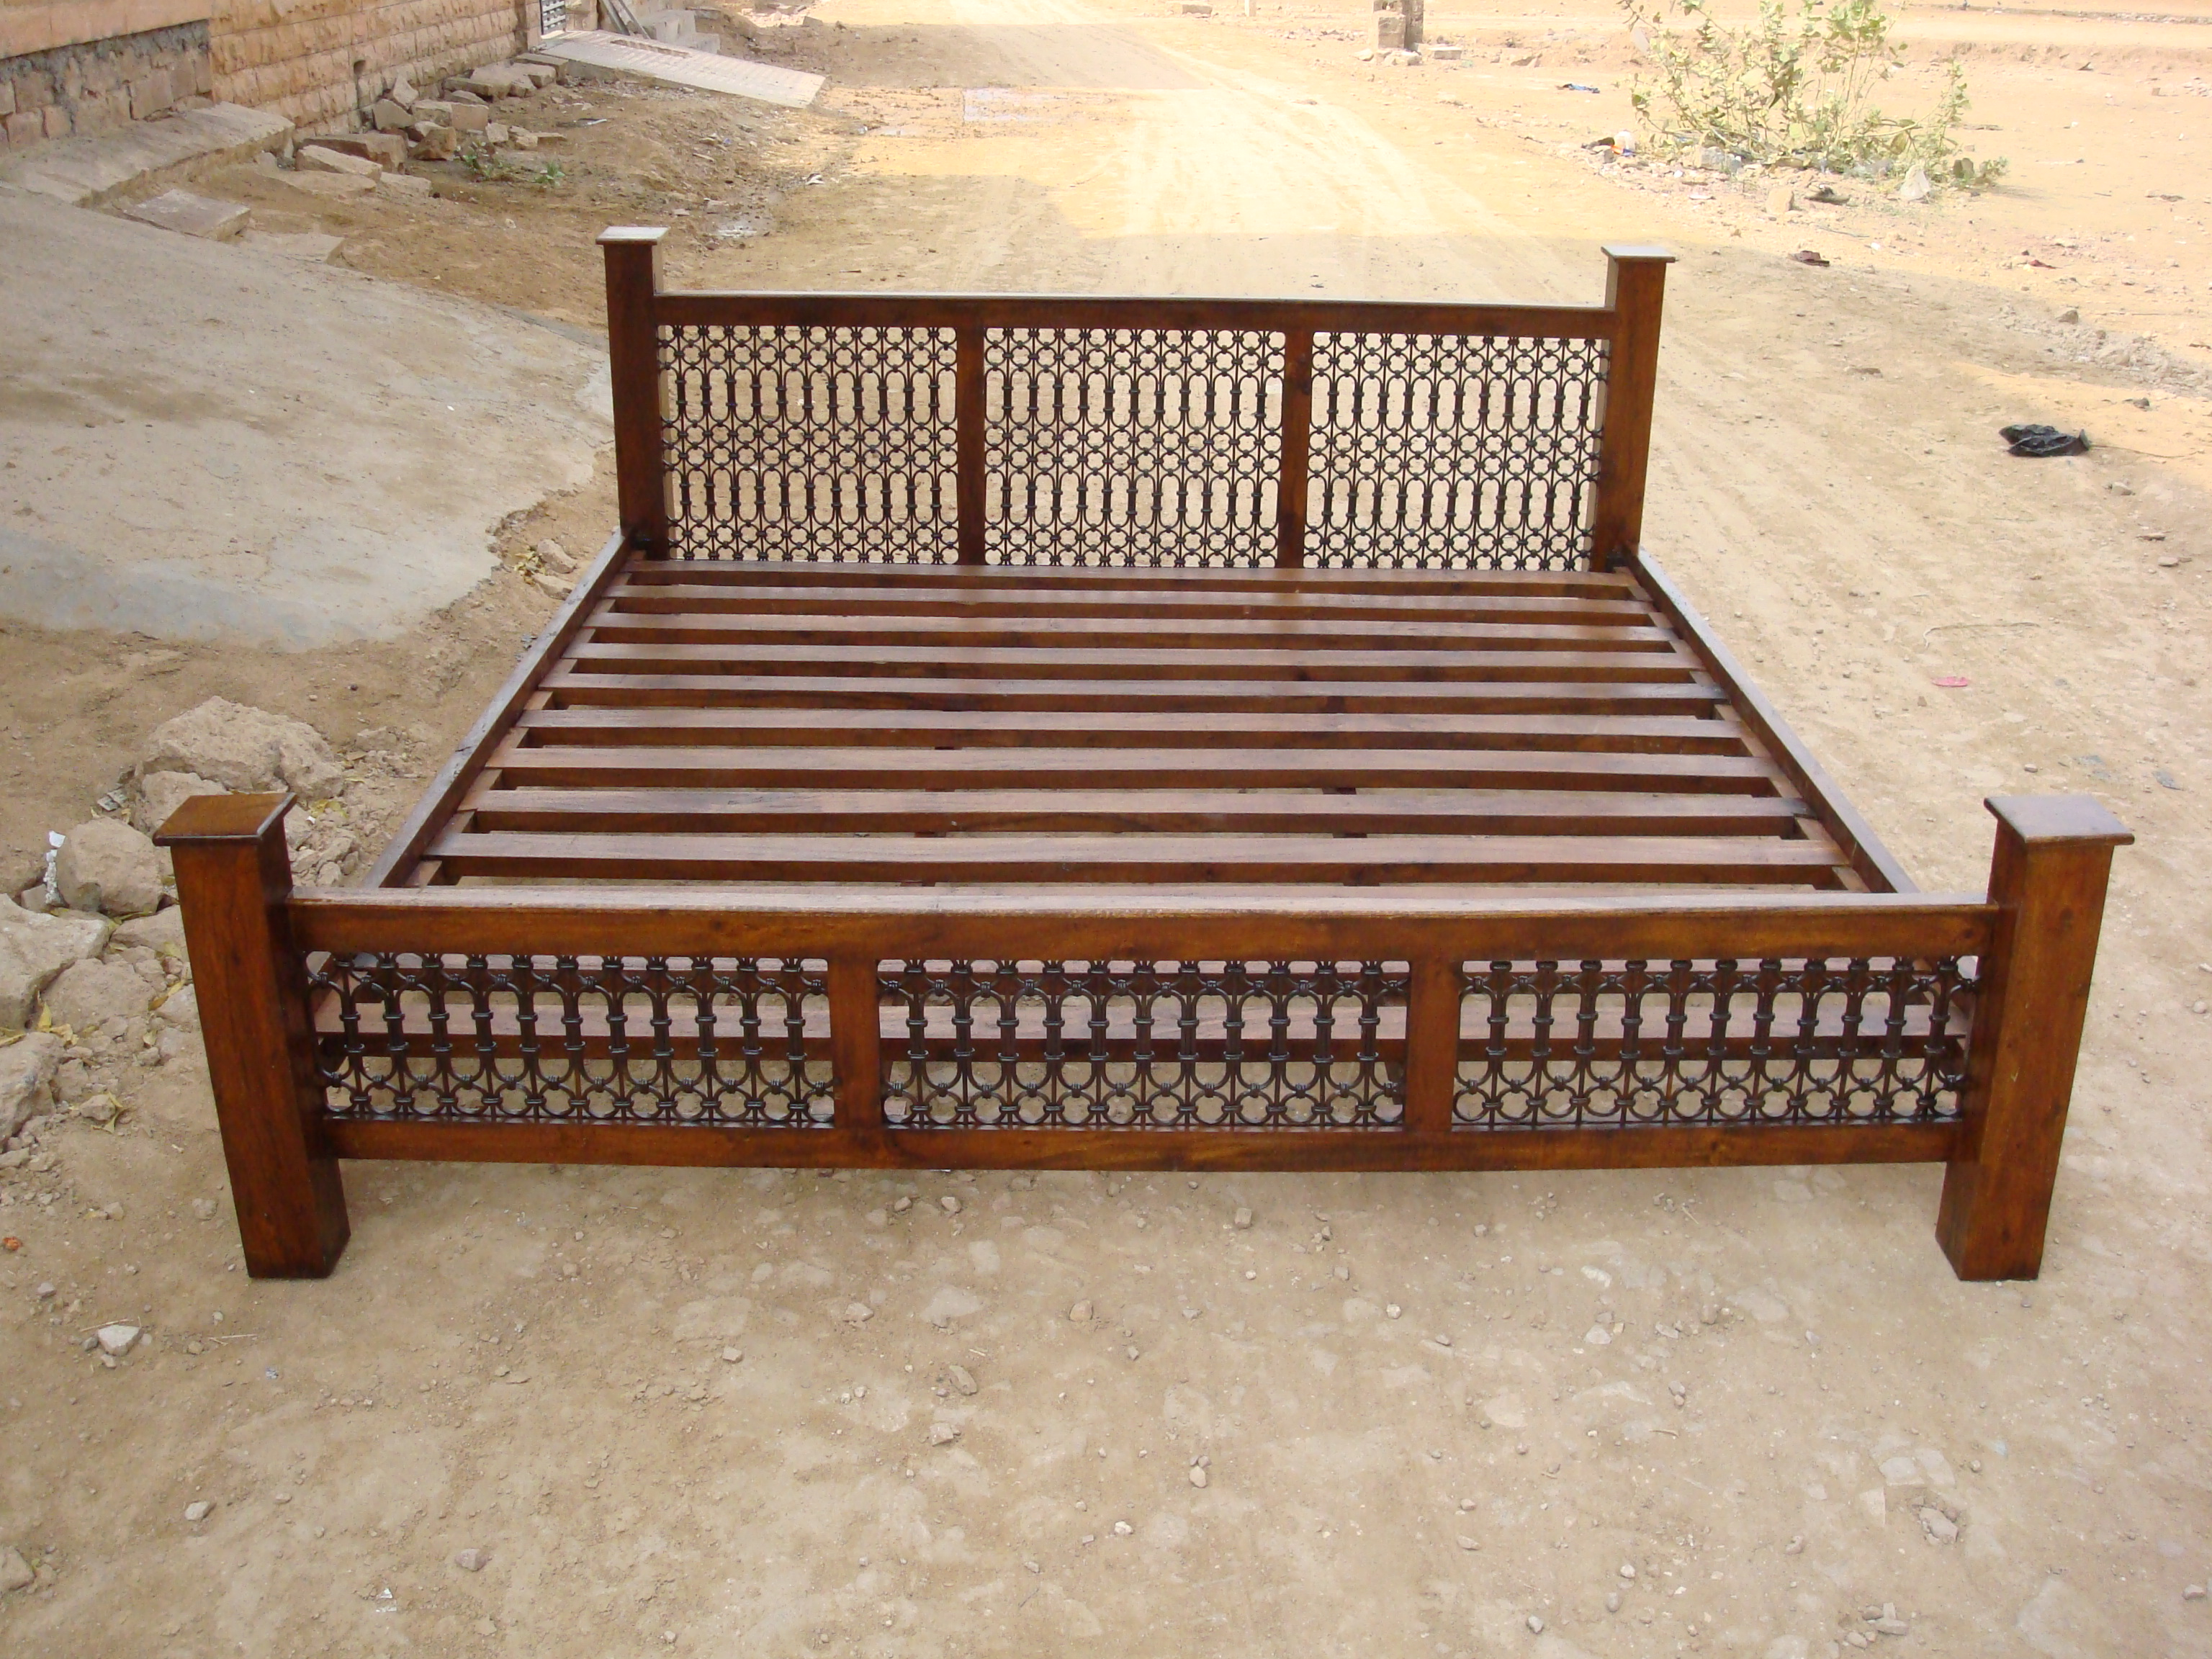 Indian wooden storage bed wooden double bed wooden beds from india sheesham wood beds jodhpur Wooden bed furniture